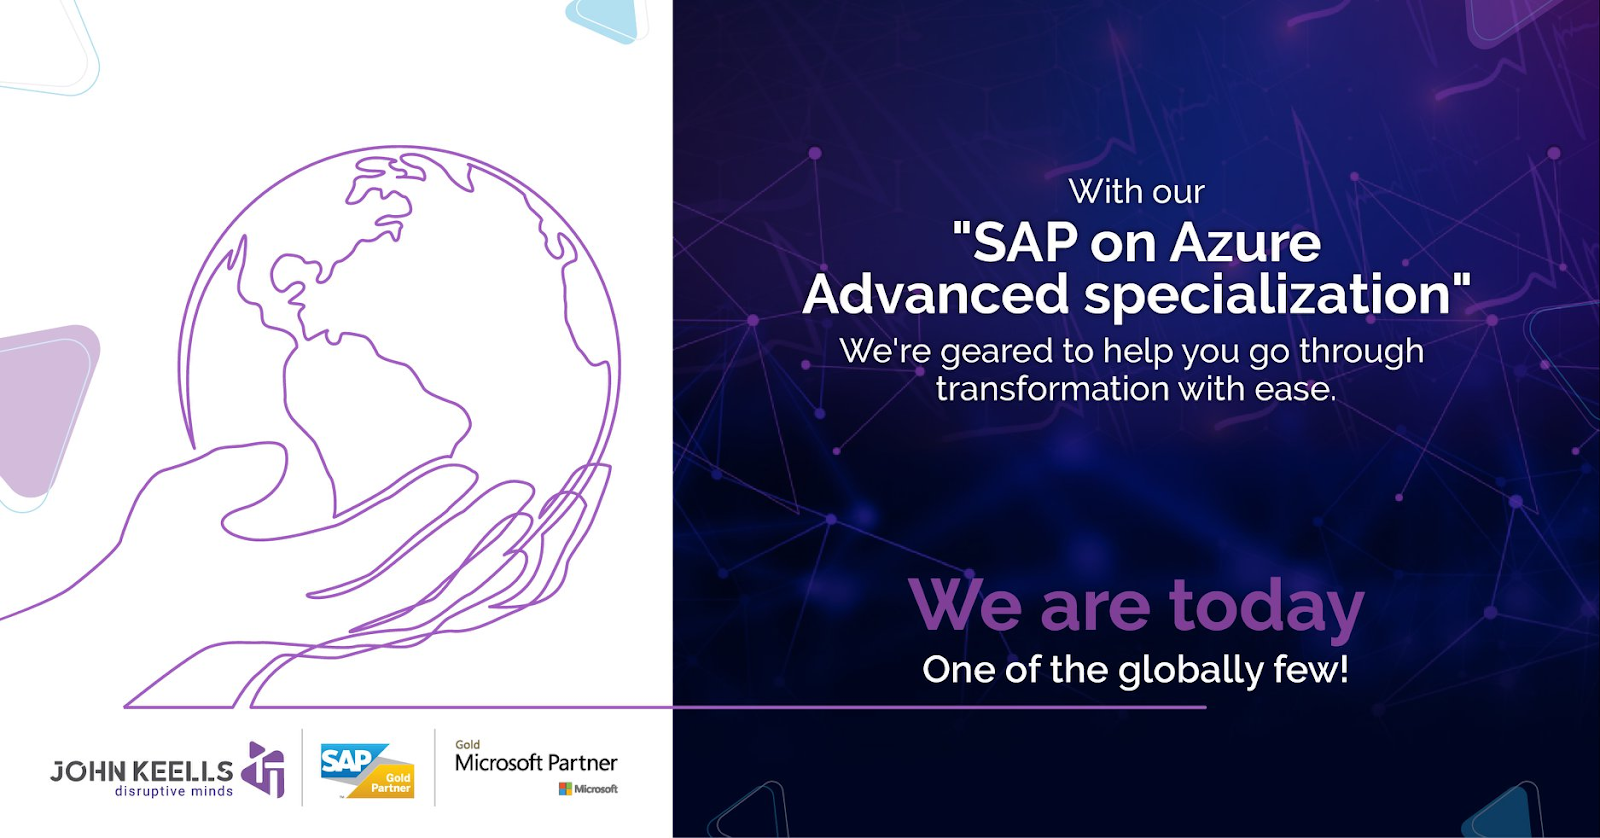 John Keells IT Obtains SAP on Azure Advanced Specialization To Further Empower Organizations 1